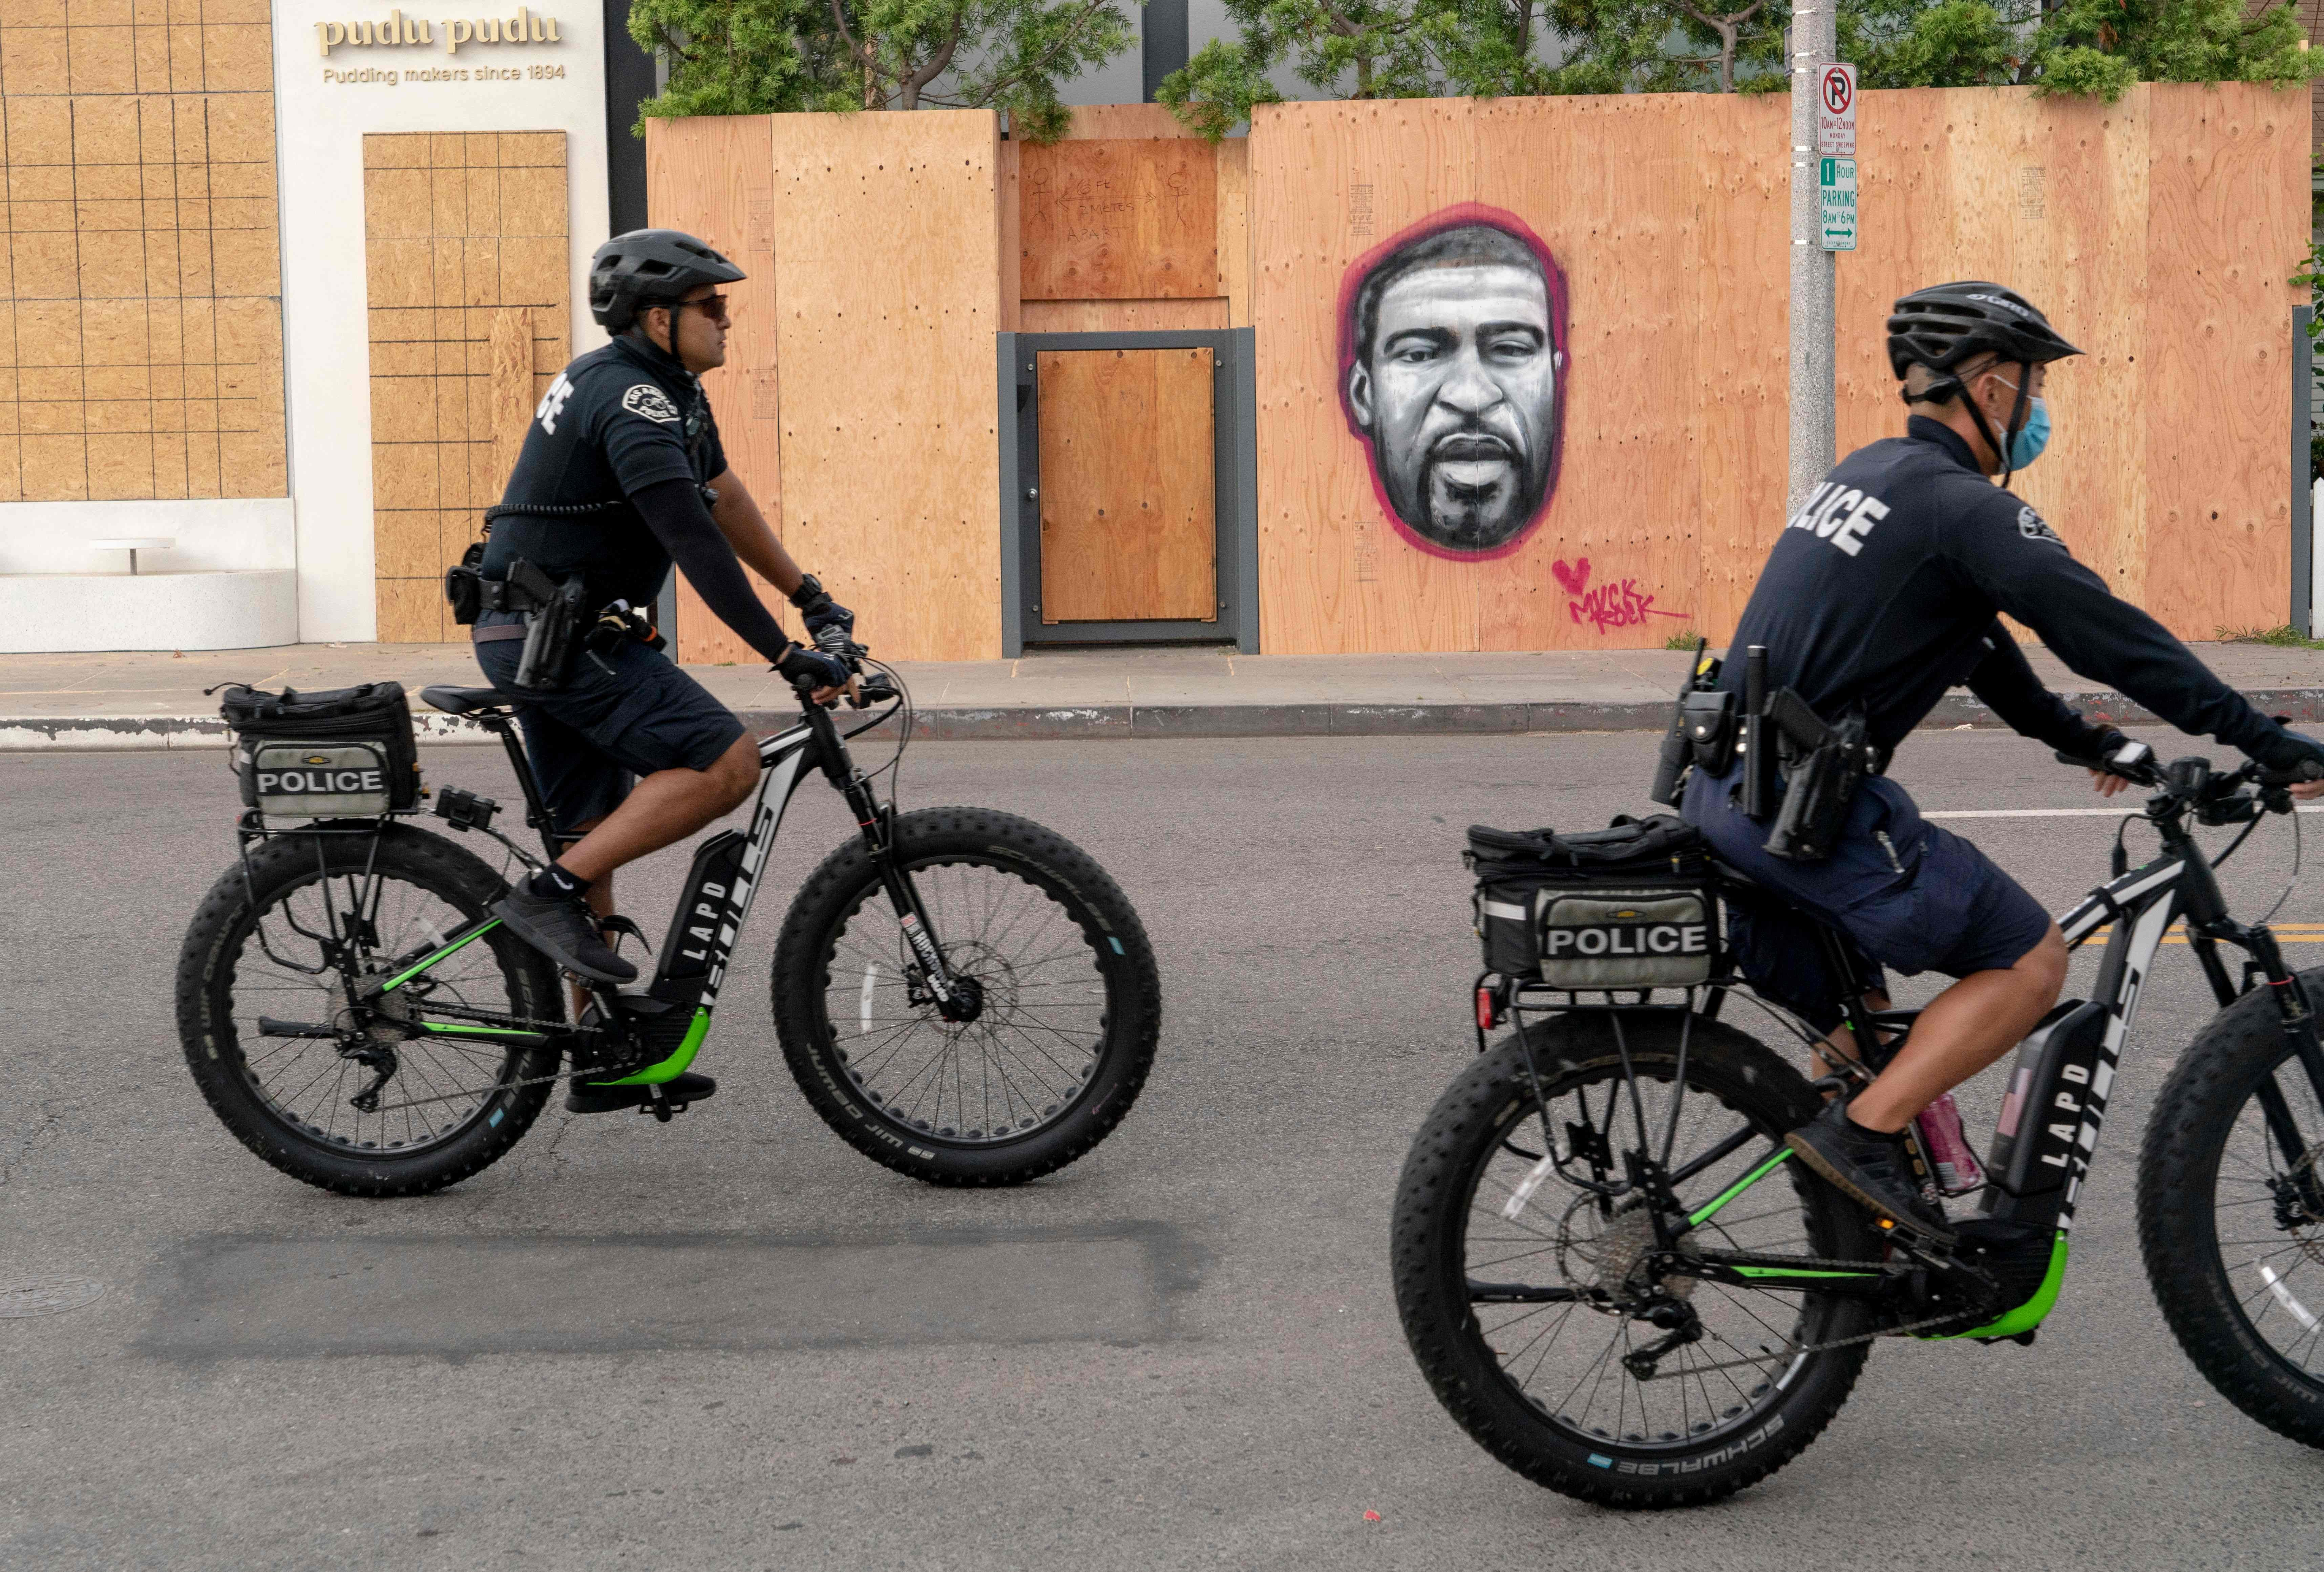 Police officers ride bicycles past a mural of George Floyd in the Venice area of Los Angeles on June 2, 2020.